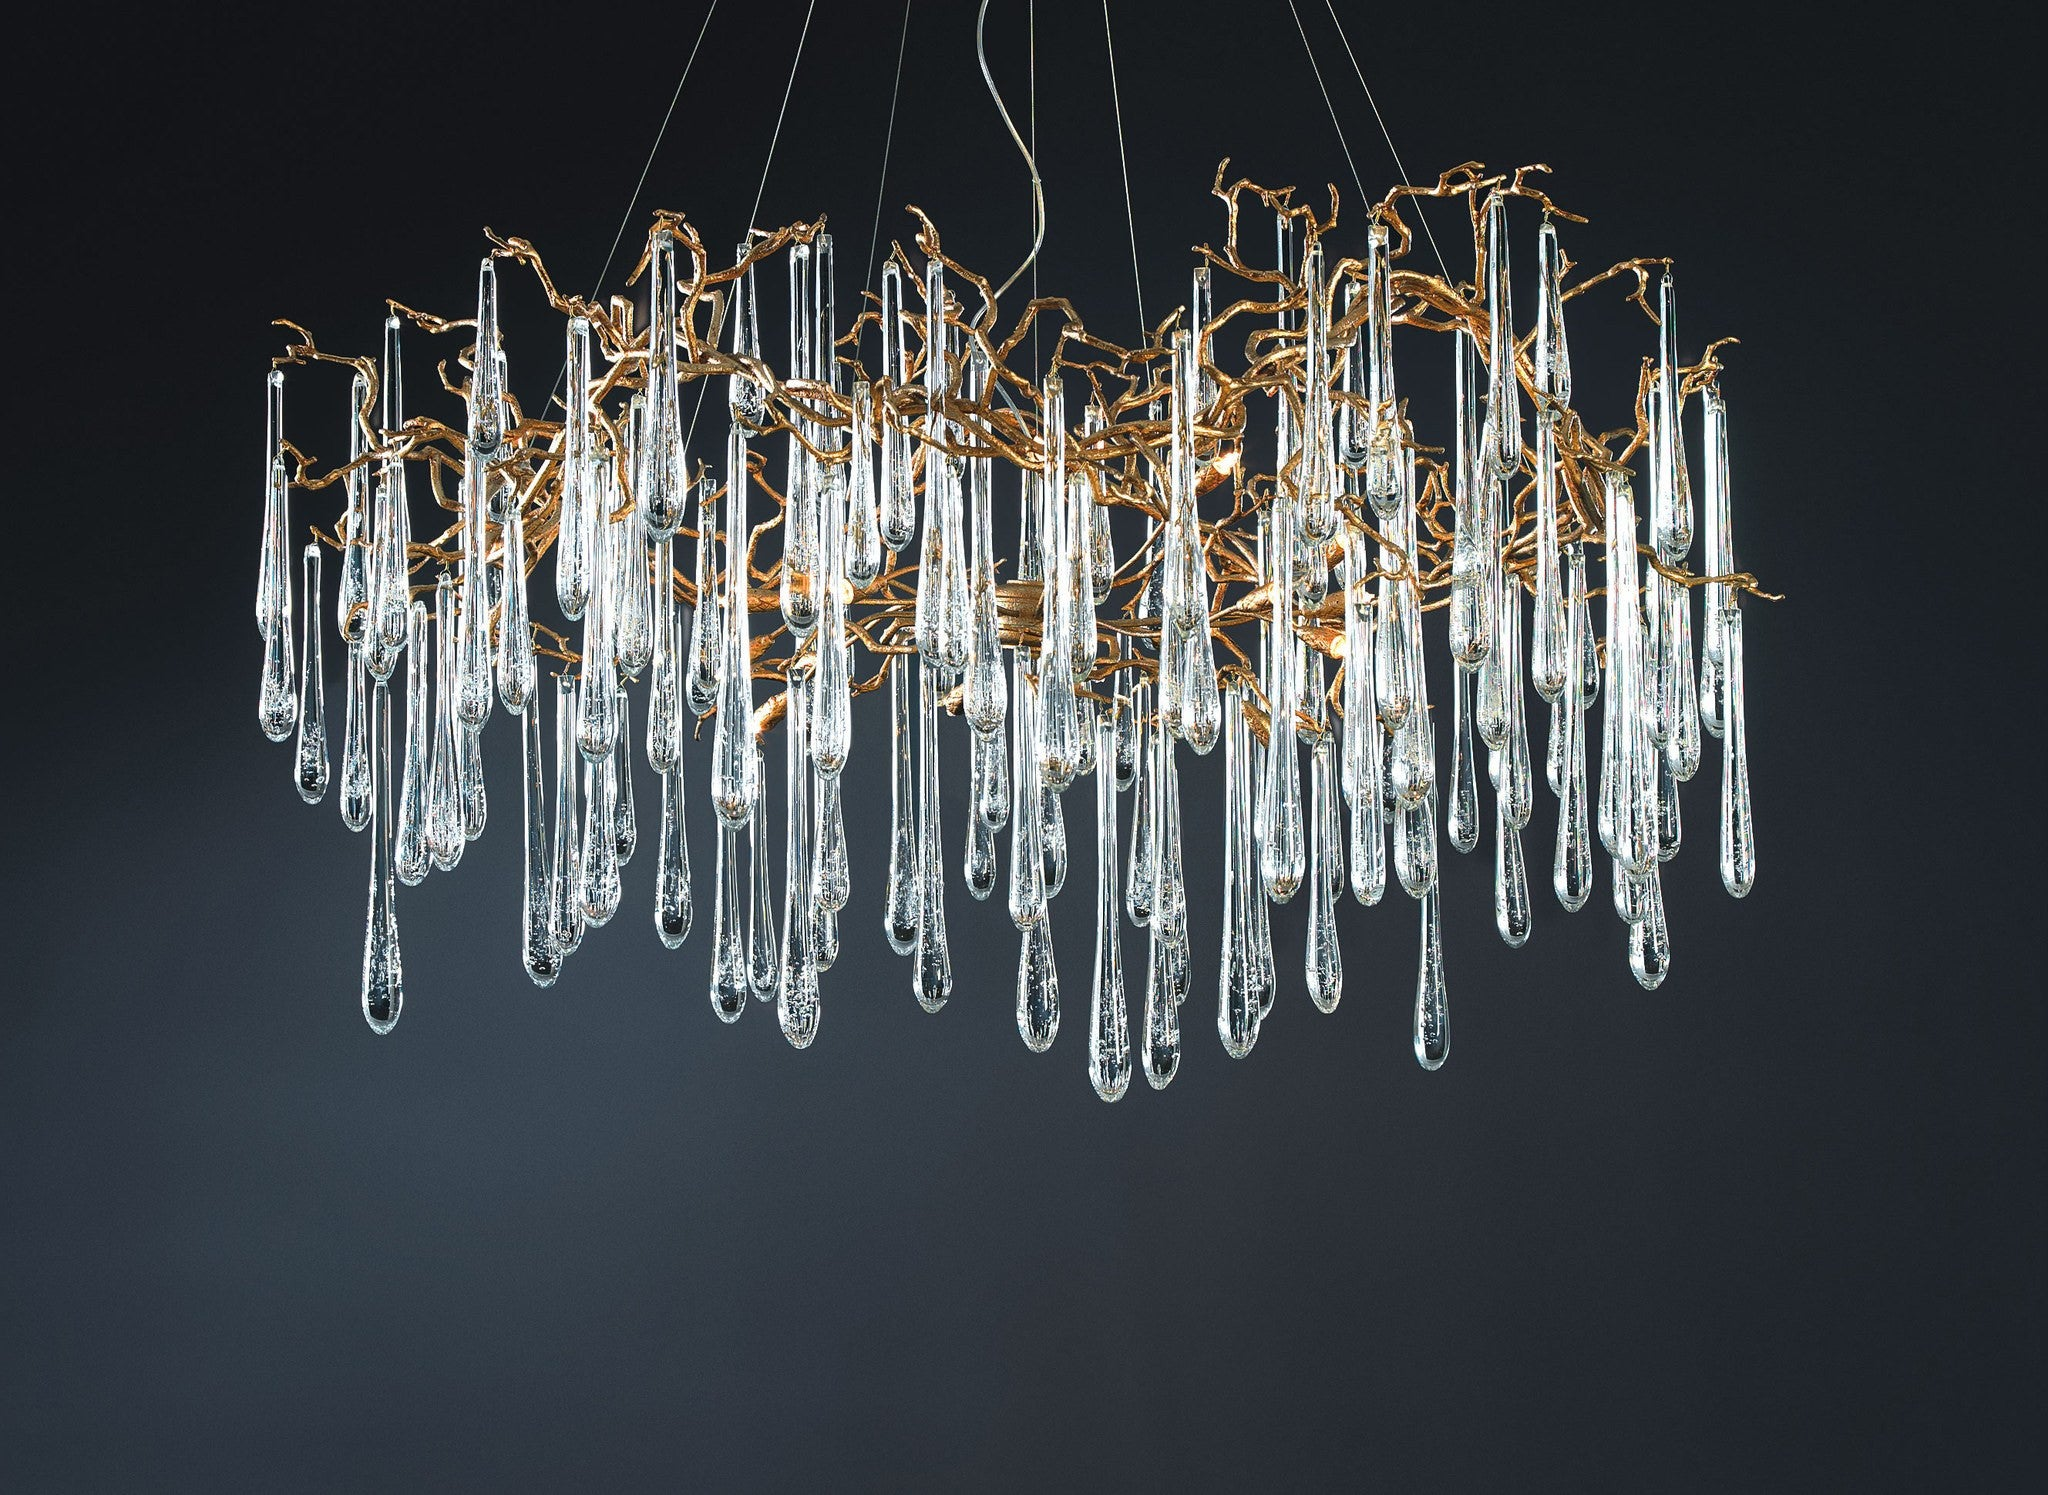 Serip Aqua 15 Lamp Organic Bespoke Chandelier – London Lighting